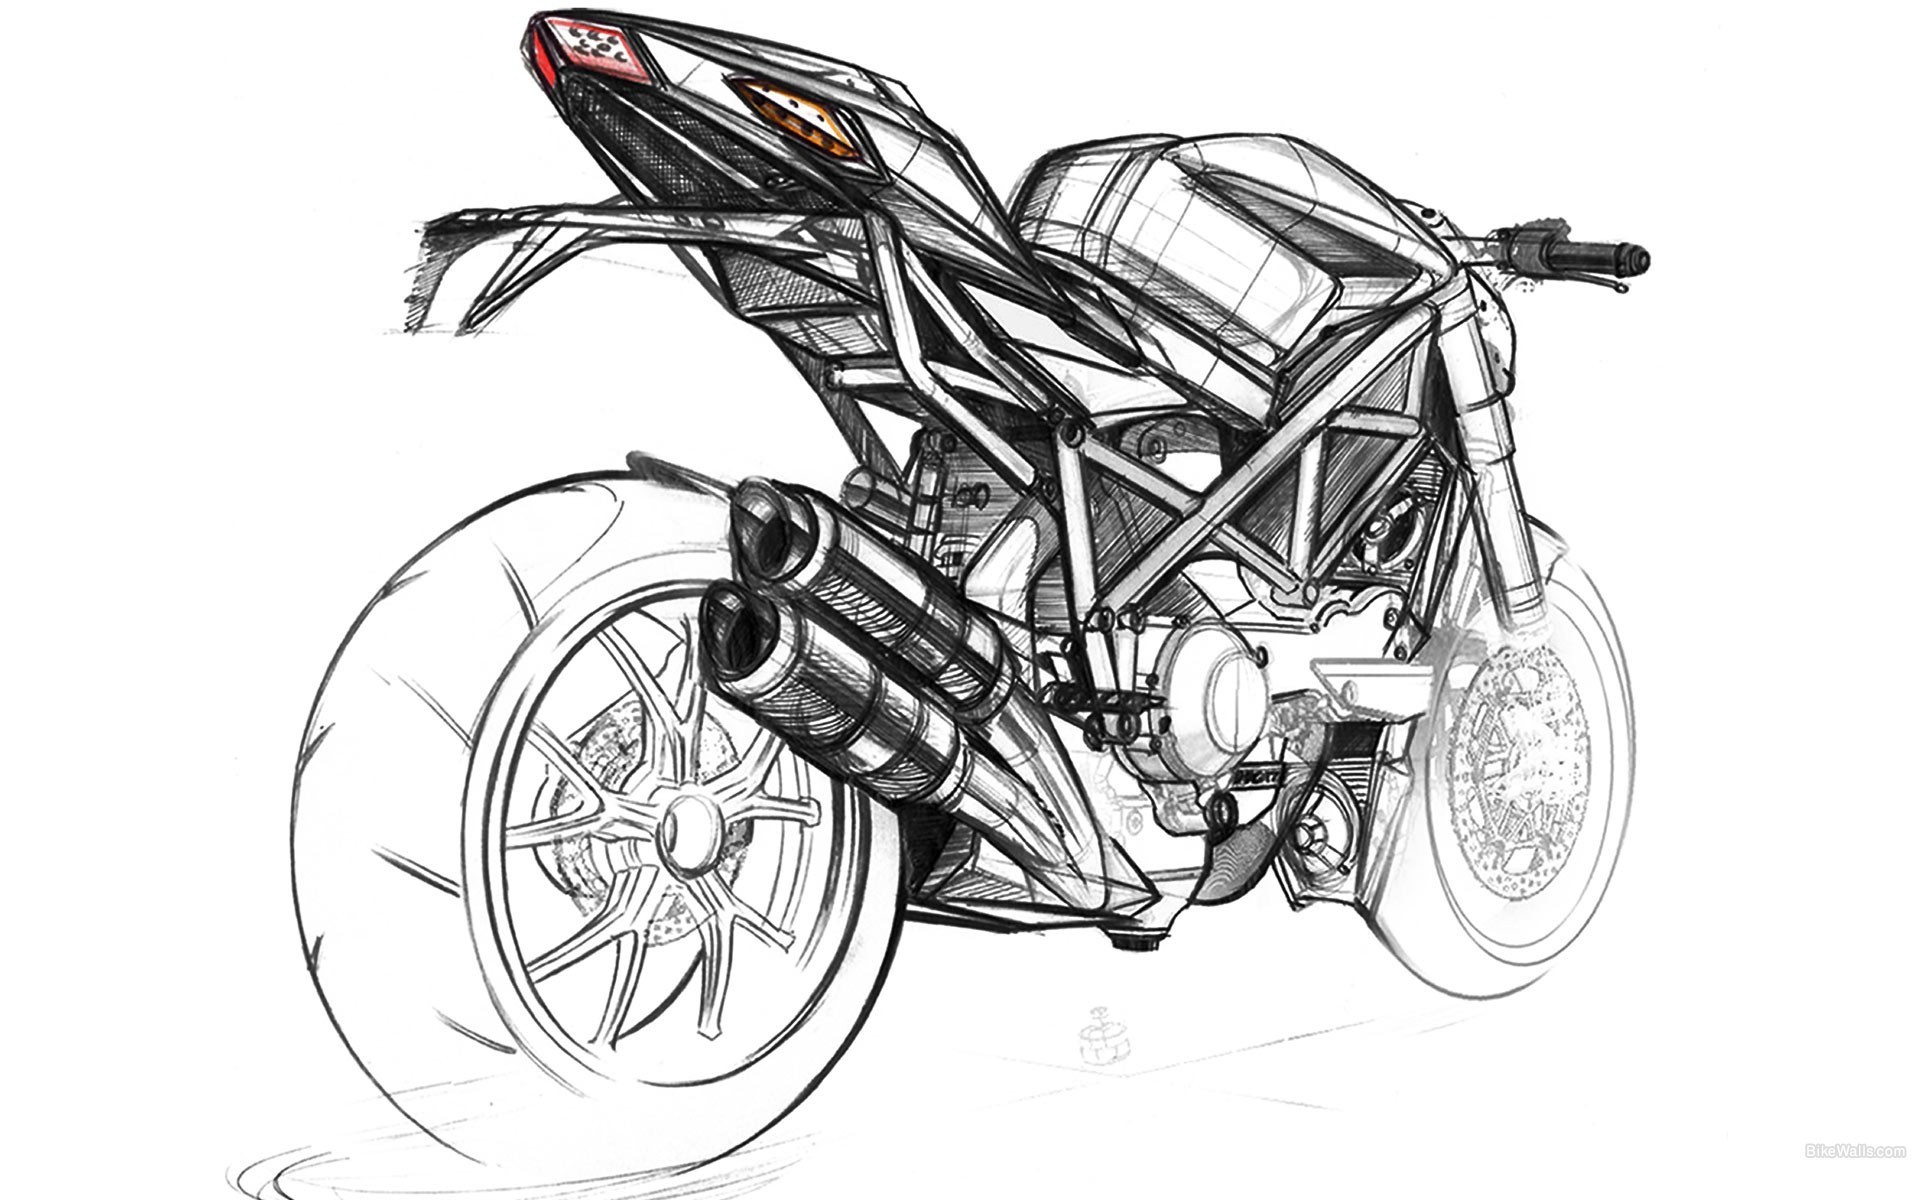 Ducati Artwork Motorbikes Sketches Vehicles Wallpaper Allwallpaper